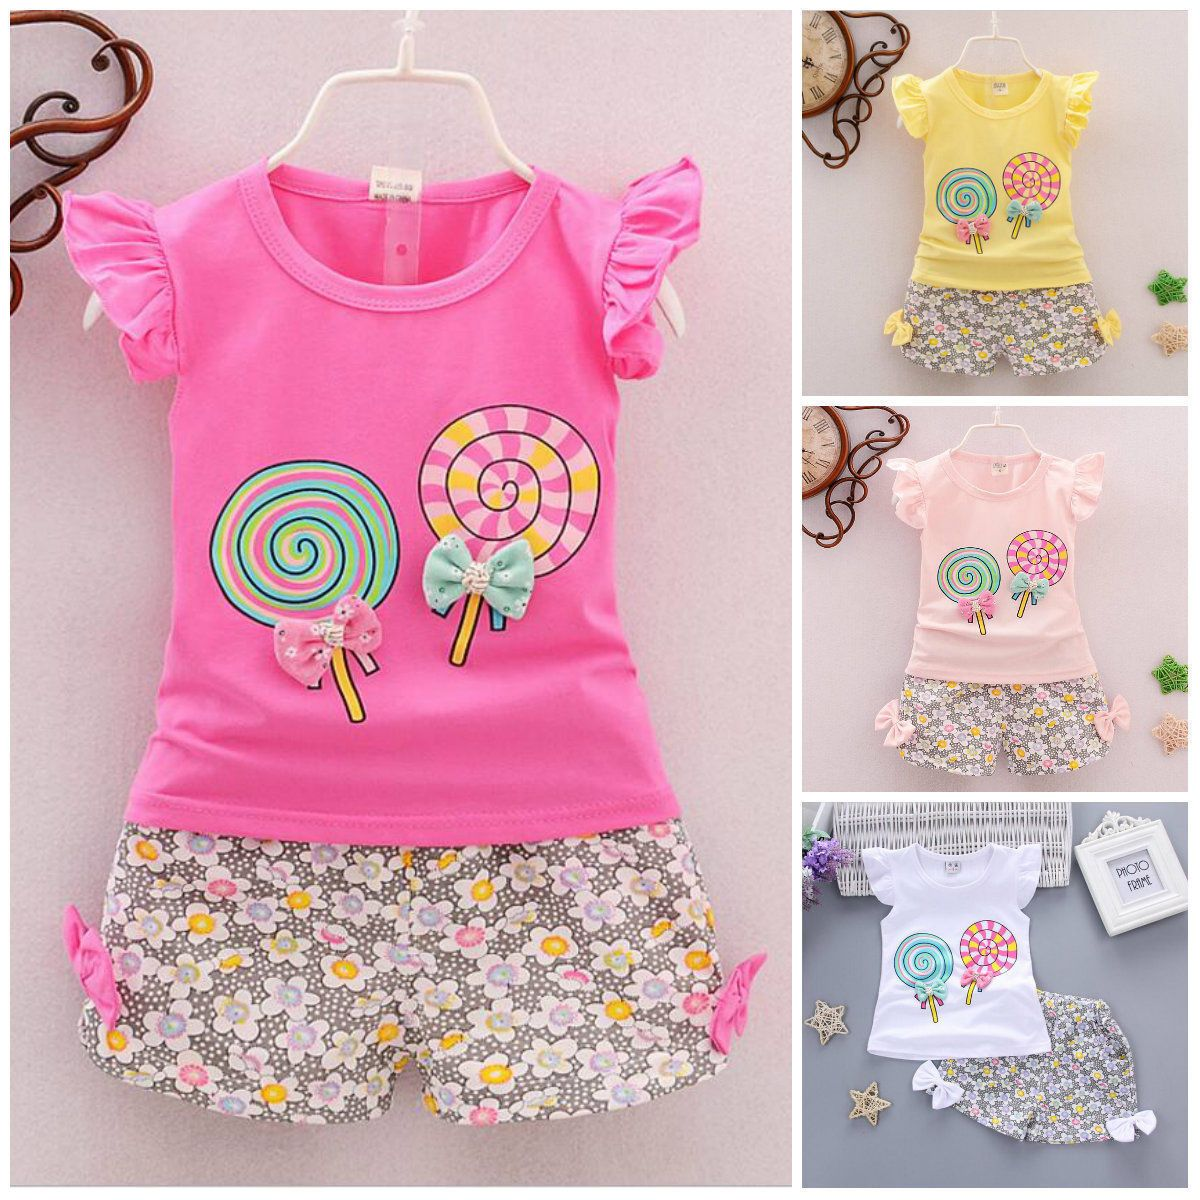 2pcs Toddler Kids Baby Girls Sleeve T-shirt Tops Pants Fashion Clothing Girl Outfits Clothes Set Girls' Clothing